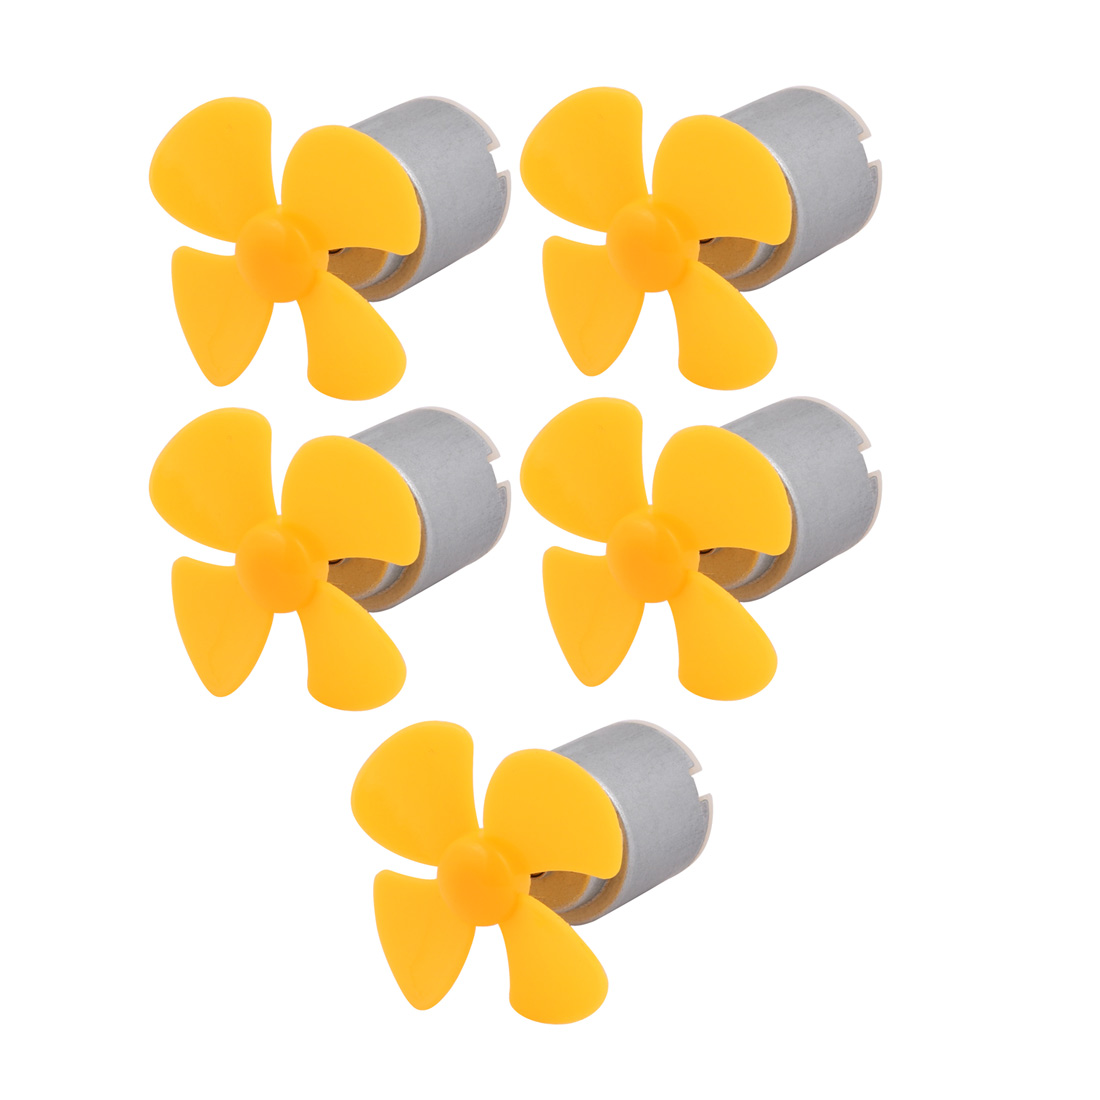 5pcs DC 3V 0.13A 20000RPM Strong Force Motor 4 Vanes 40mm Yellow Propeller for RC Aircraft